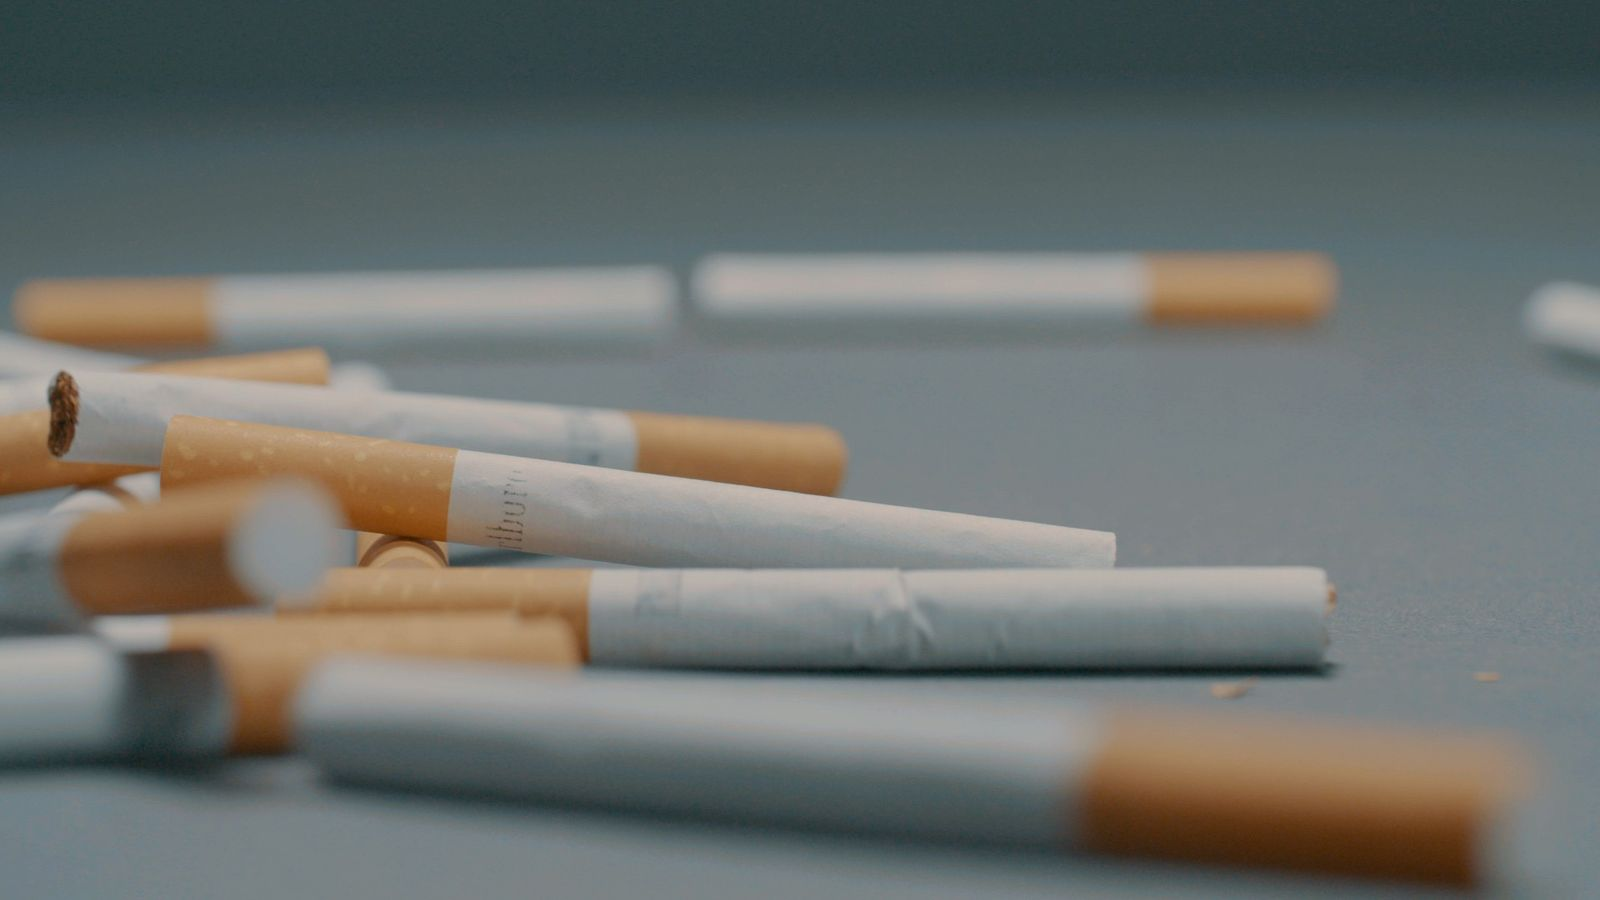 What's the world's most littered plastic item? Cigarette butts